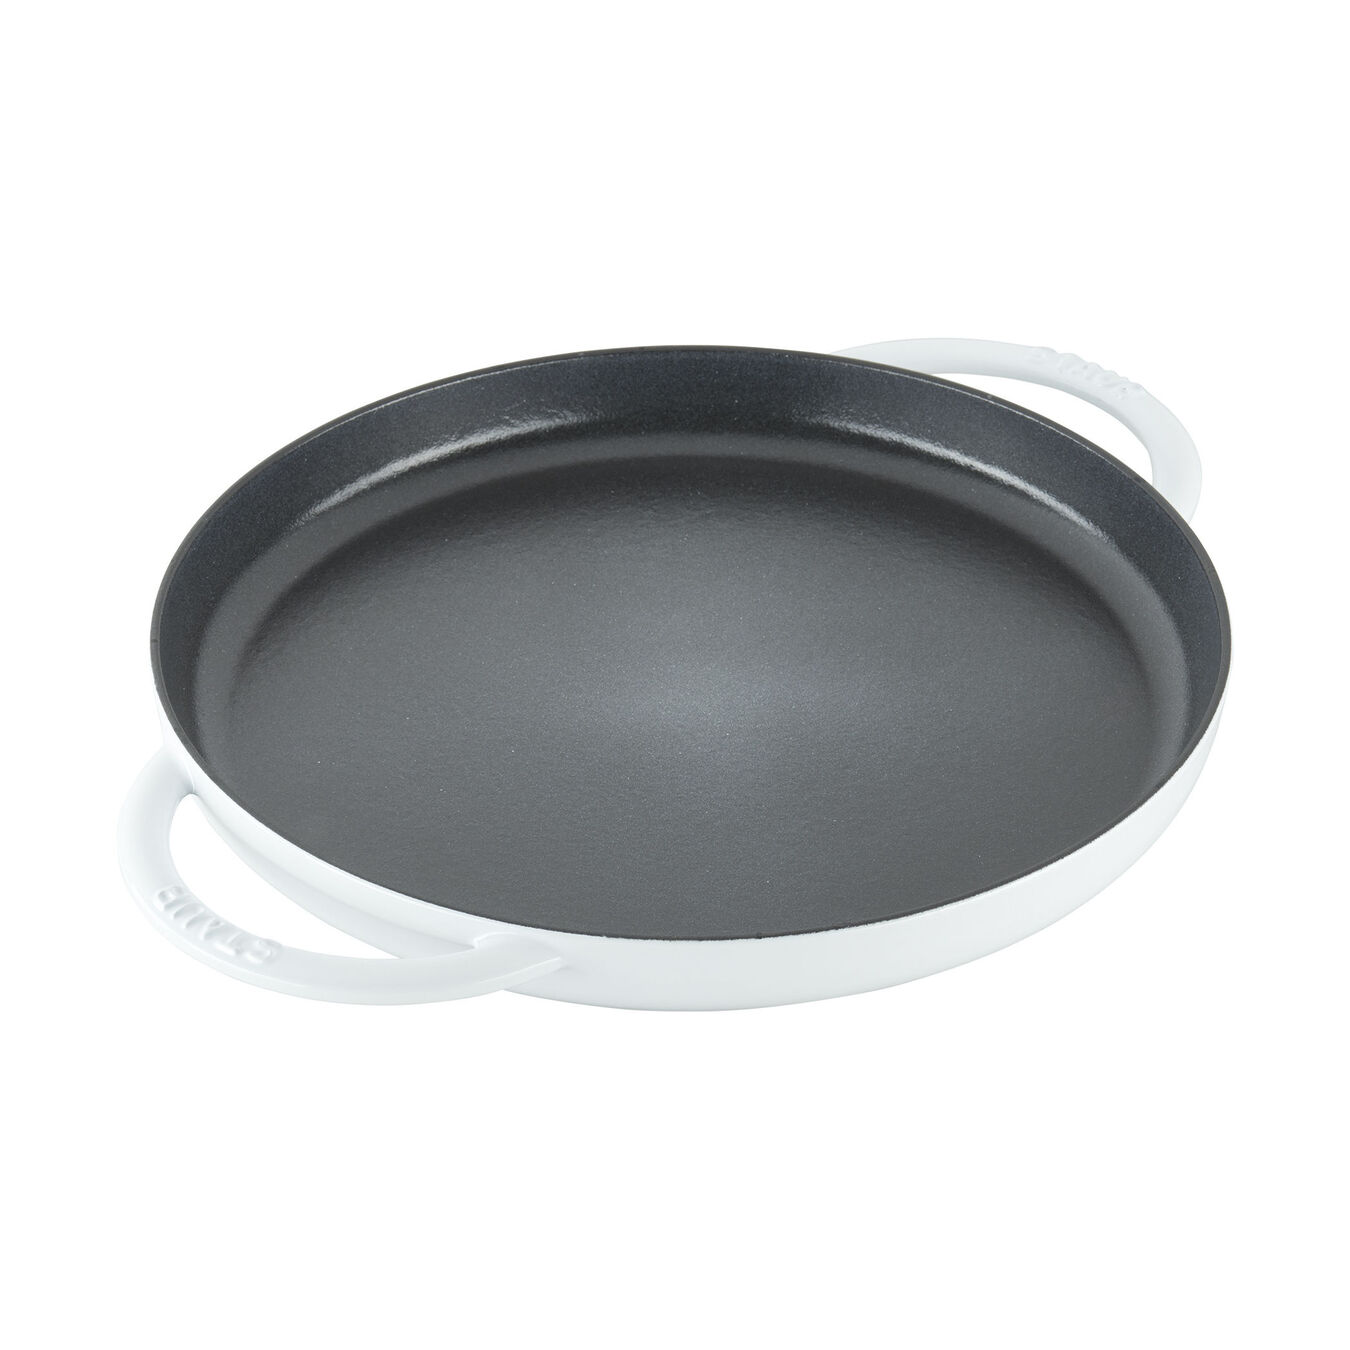 12-inch Round Double Handle Pure Griddle - White,,large 1